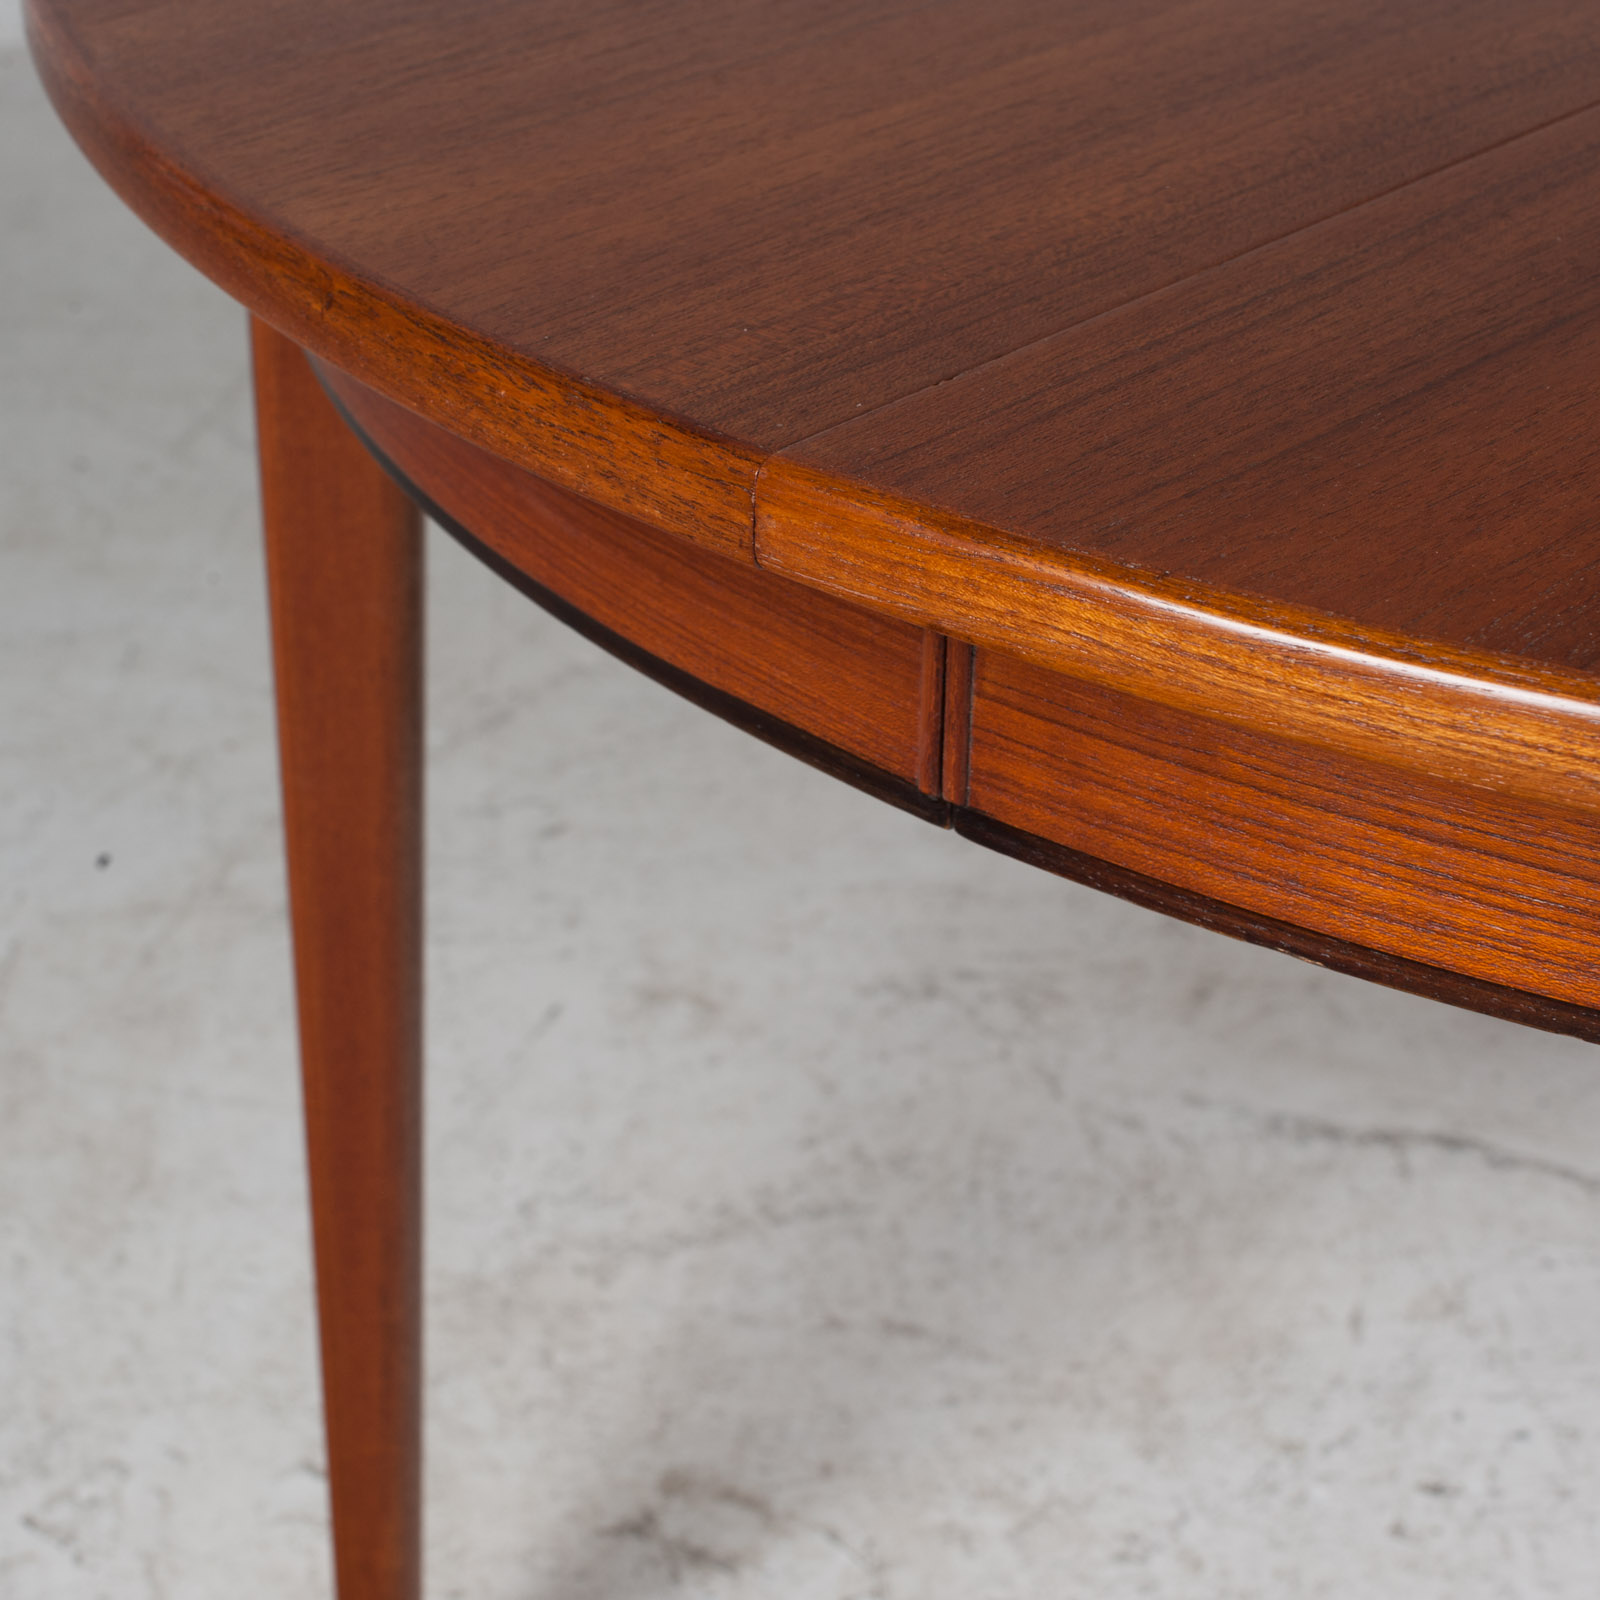 Round Dining Table By Omann Jun In Teak With Three Extensions 1960s Denmark 06